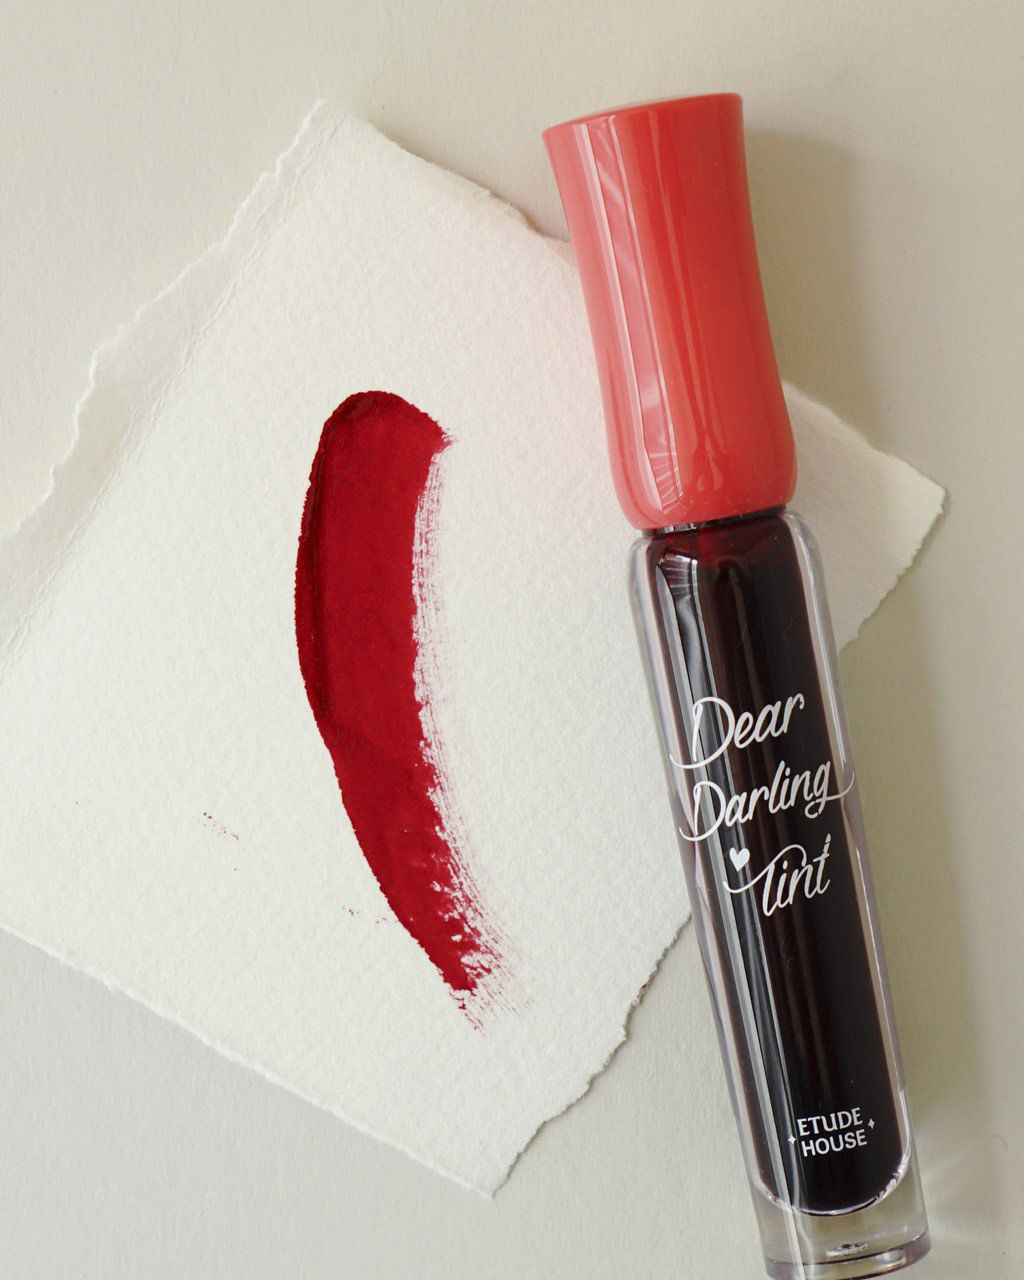 Etude House Dear Darling Water Gel Tint in RD302